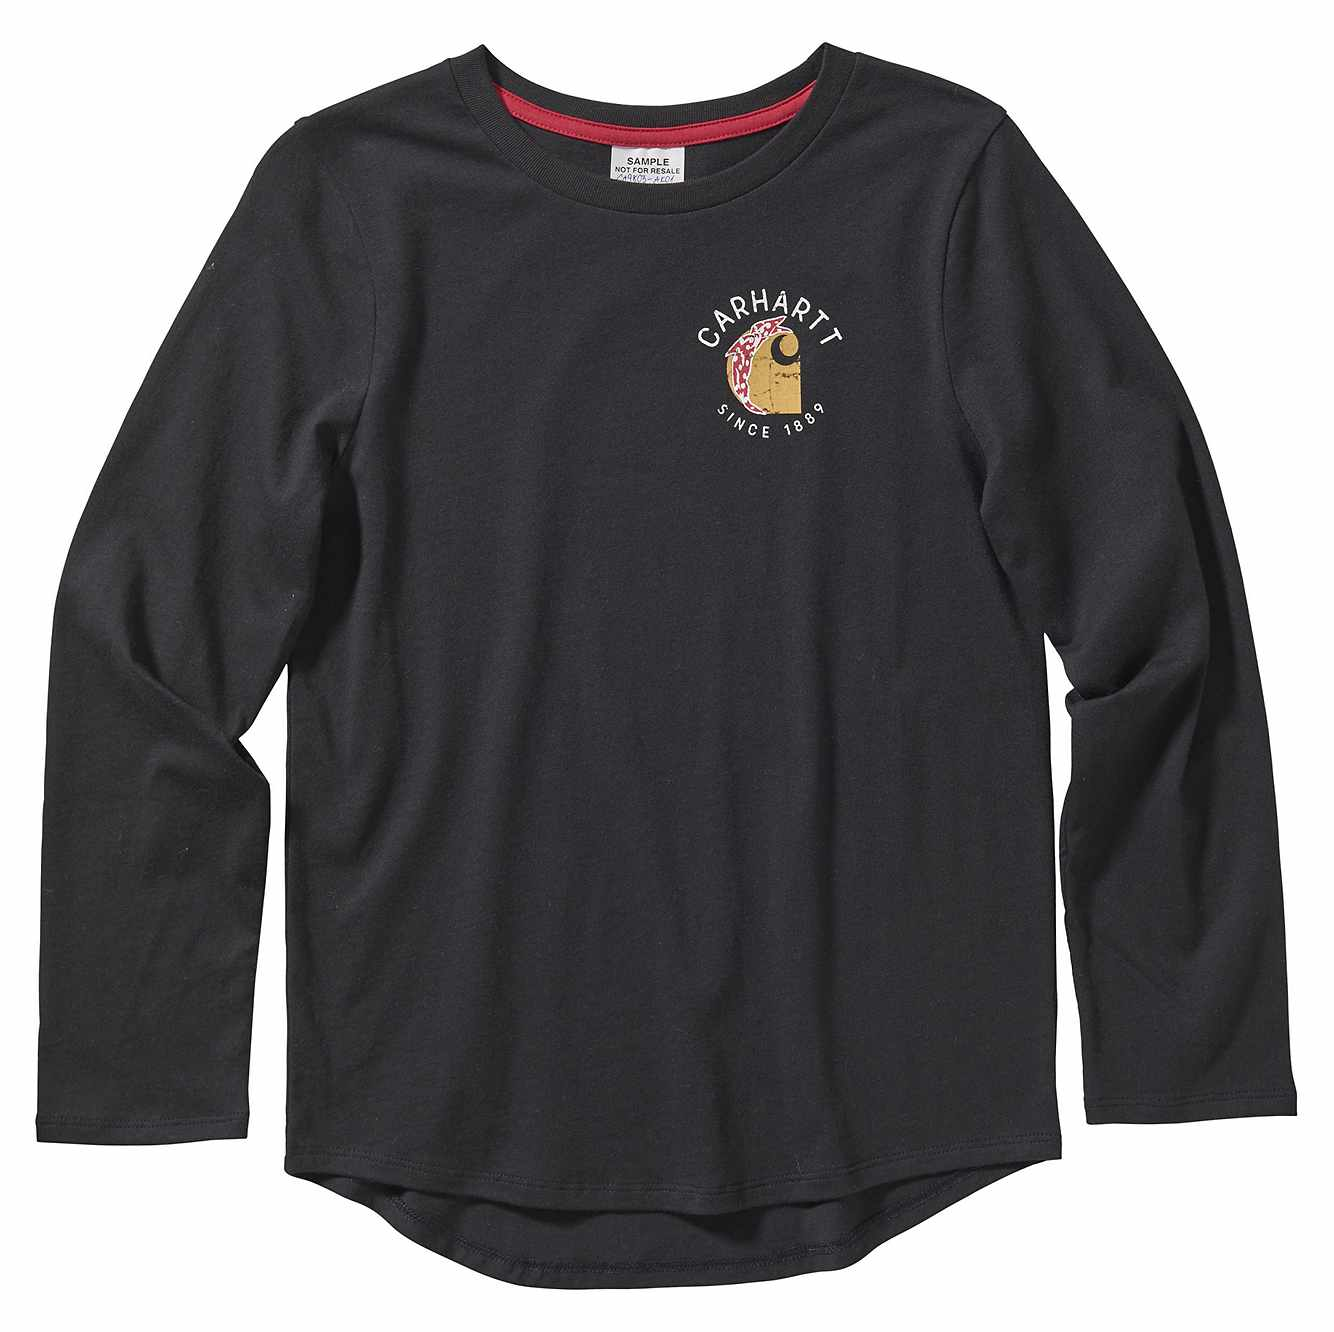 Picture of Long Sleeve Carhartt Graphic Tee in Caviar Black